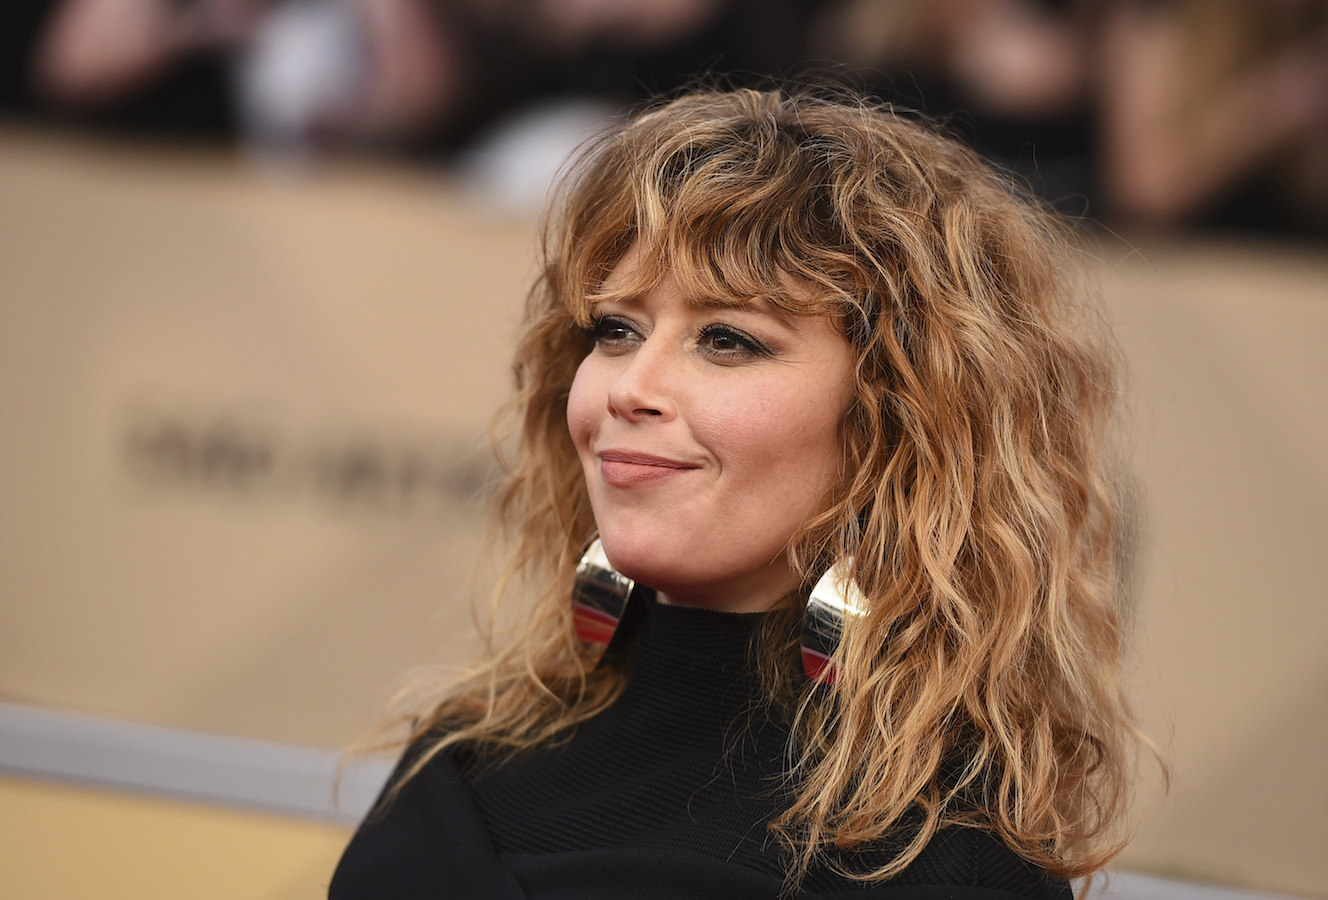 <div class='meta'><div class='origin-logo' data-origin='AP'></div><span class='caption-text' data-credit='Jordan Strauss/Invision/AP'>Natasha Lyonne arrives at the 24th annual Screen Actors Guild Awards at the Shrine Auditorium & Expo Hall on Sunday, Jan. 21, 2018, in Los Angeles.</span></div>